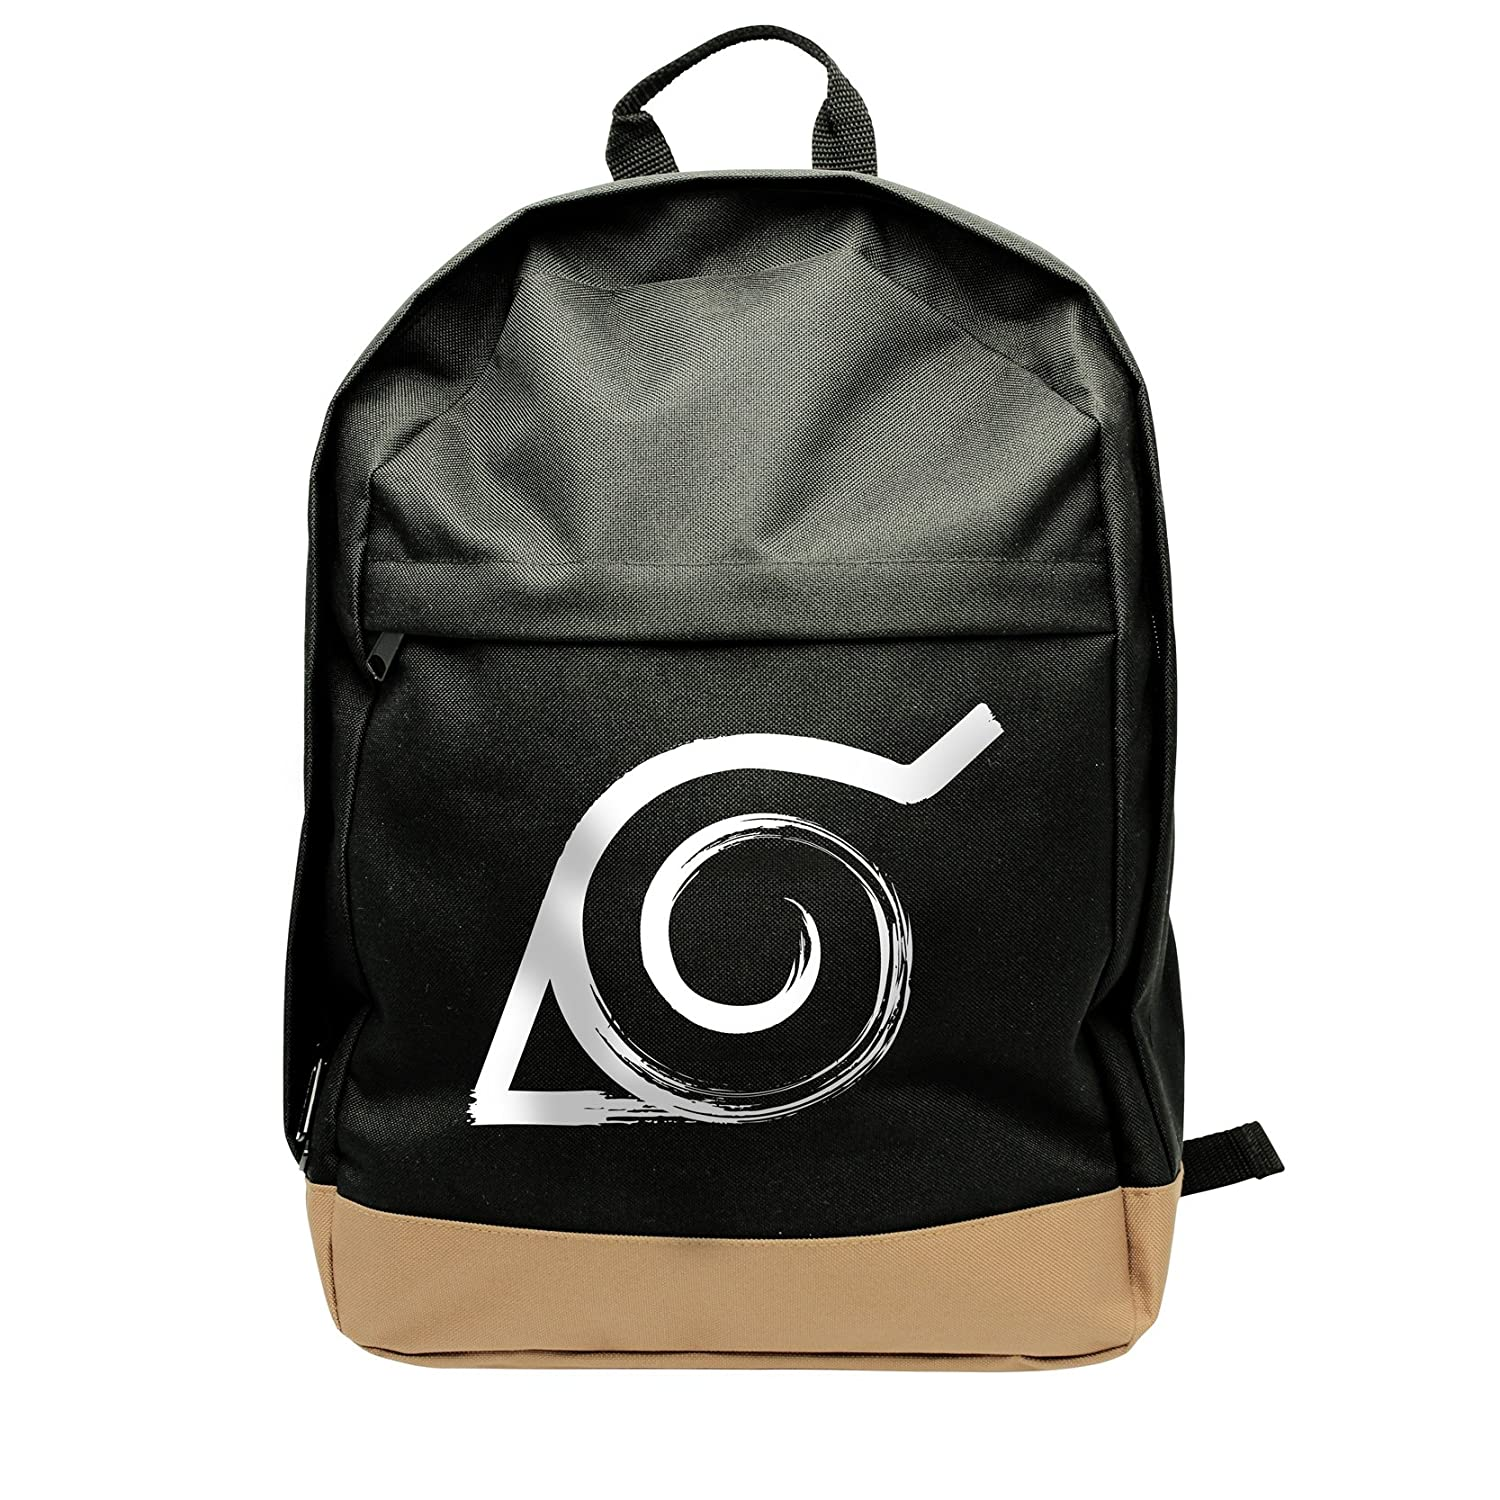 ABYstyle Abysse Corp _ Abybag245Naruto Shippuden–Sac à Dos Konoha Abysse Corp_ABYBAG245